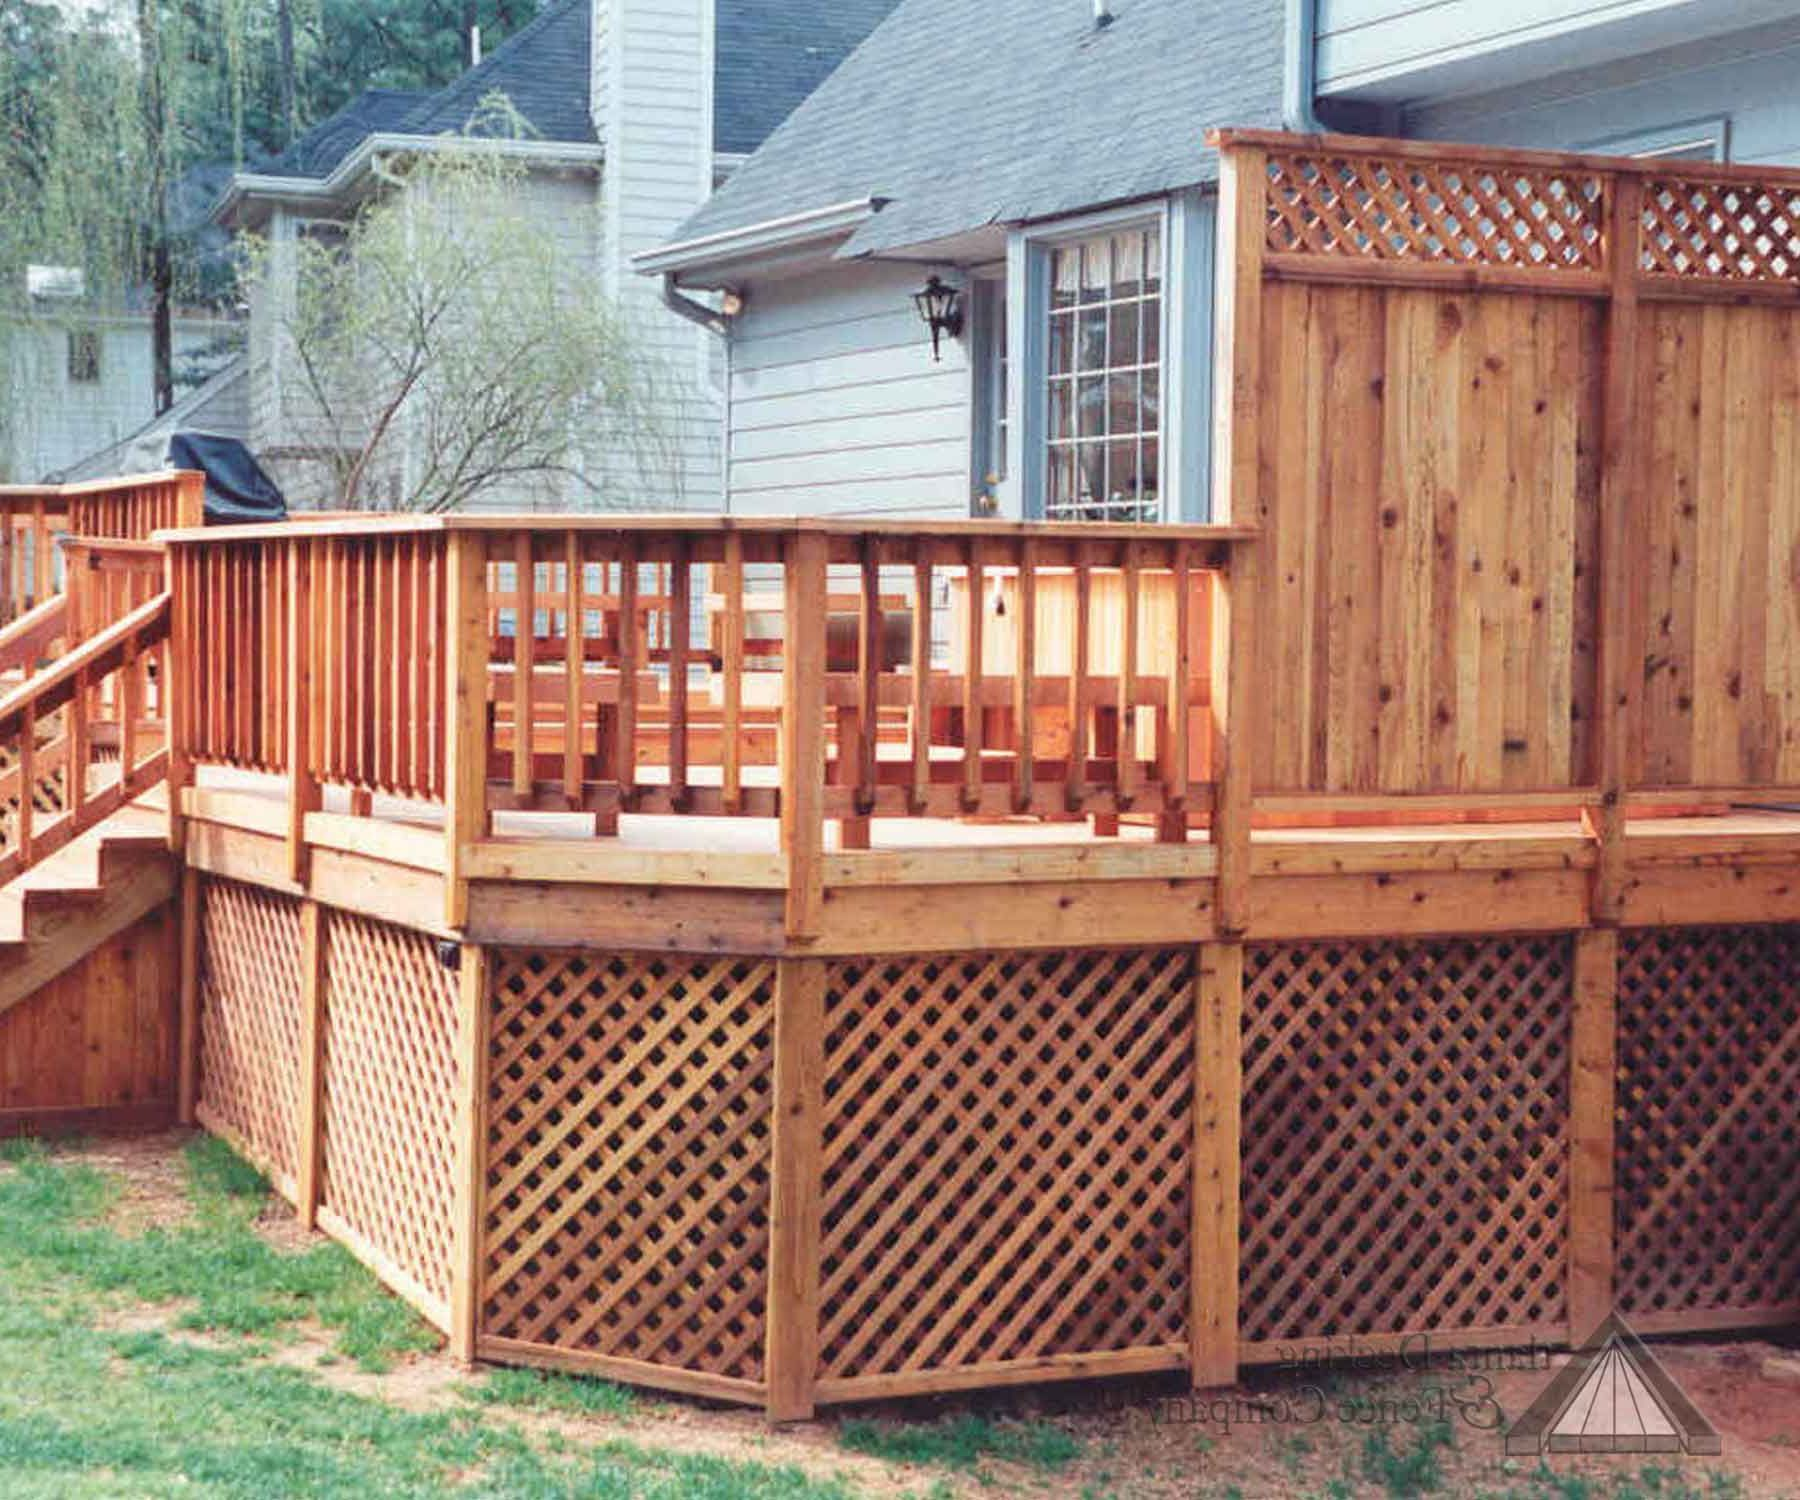 privacy screen made of wood for deck idea attractive. Black Bedroom Furniture Sets. Home Design Ideas